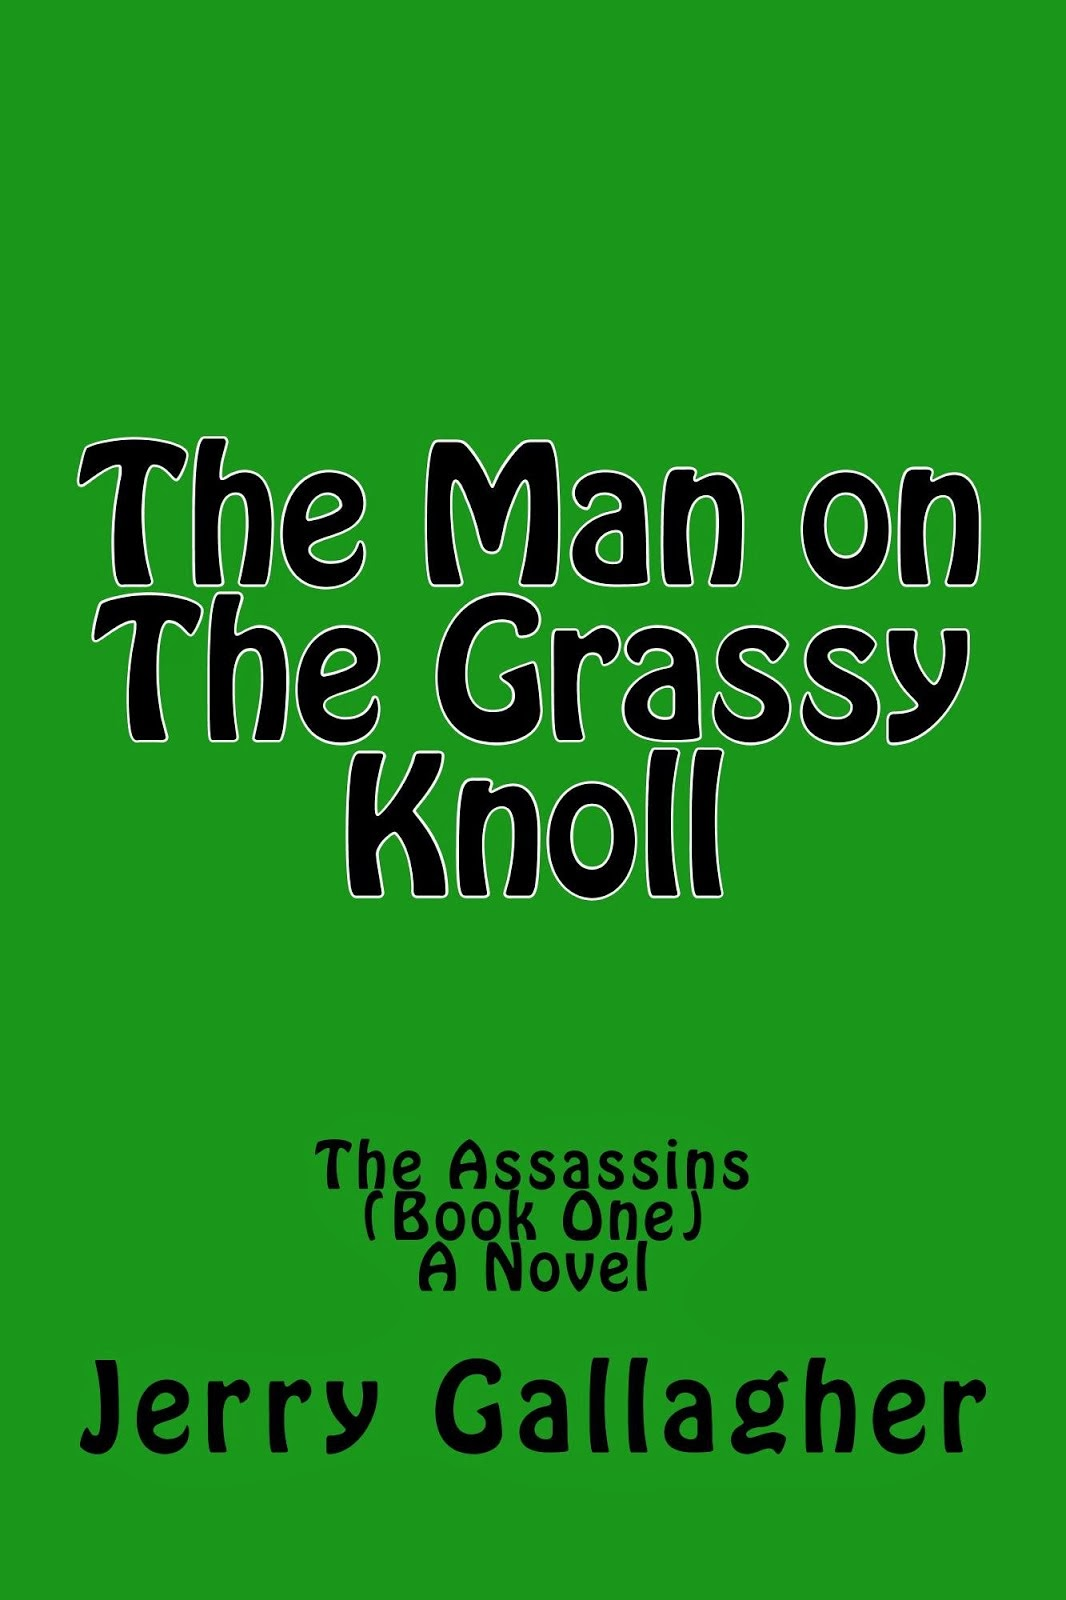 The Man on The Grassy Knoll: The Assassins, Book One in a Fictional Series